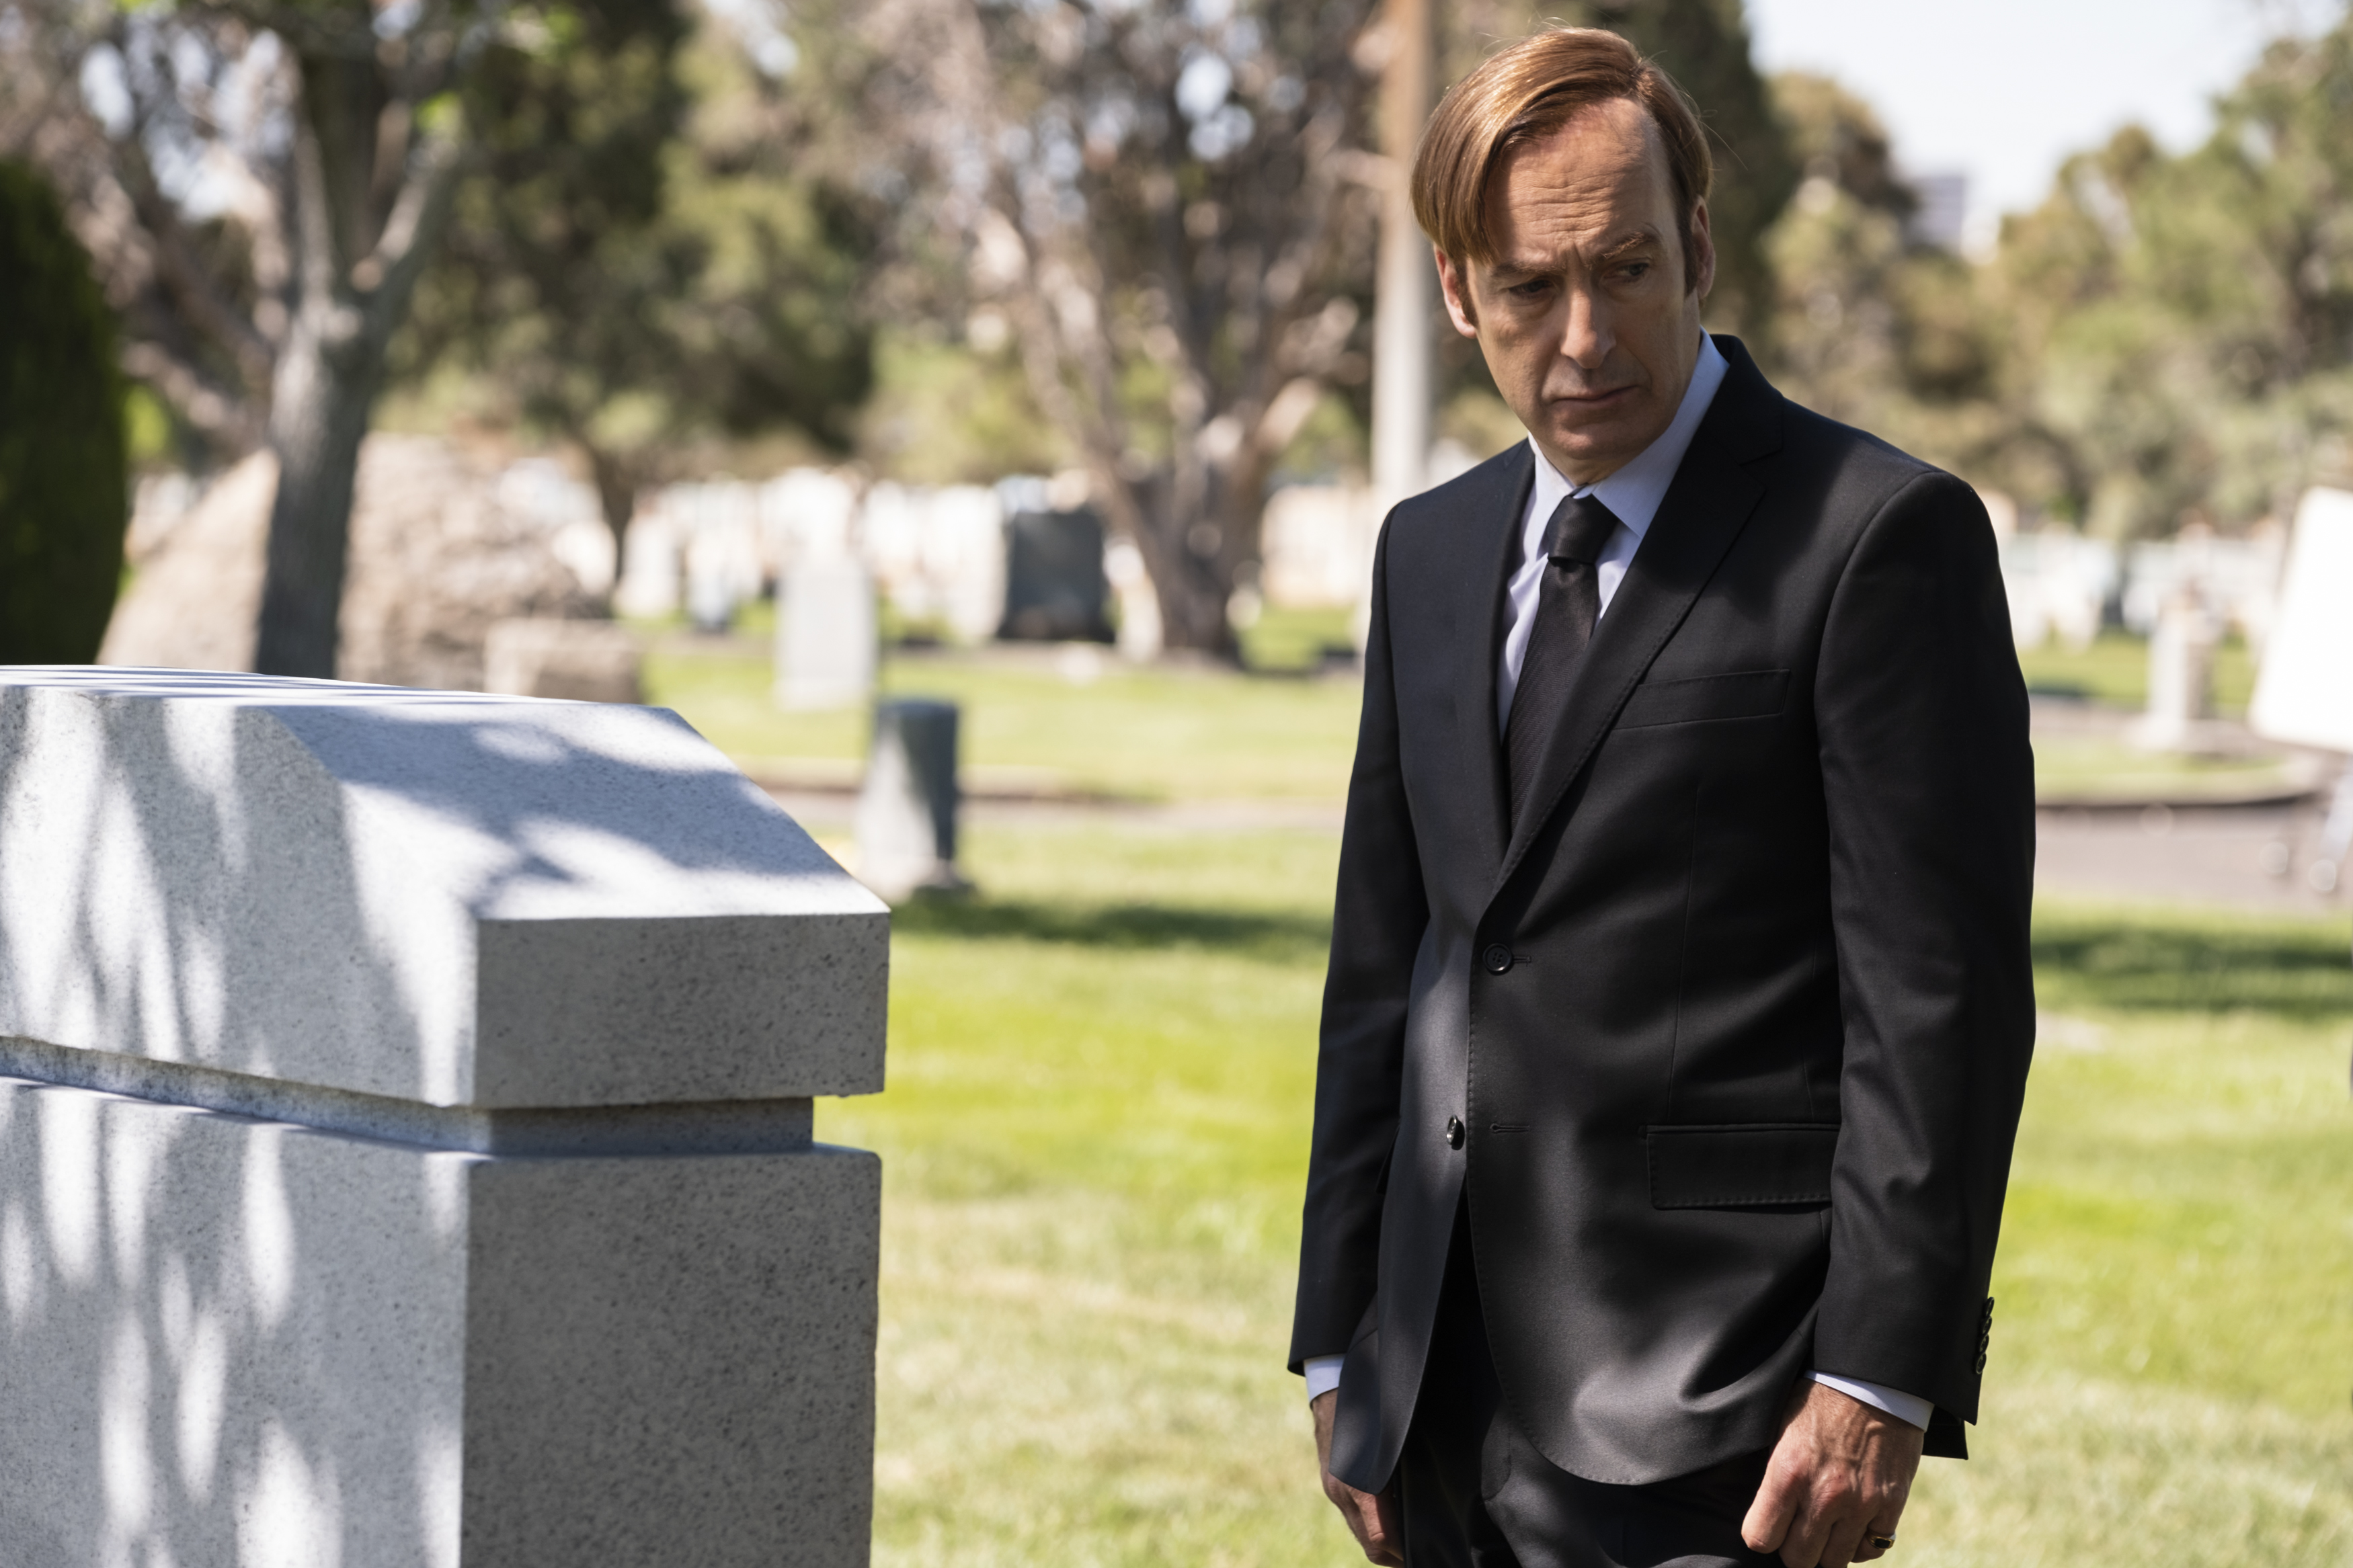 Better Call Saul is nearing its end game. Here's how long its showrunner thinks it has left.